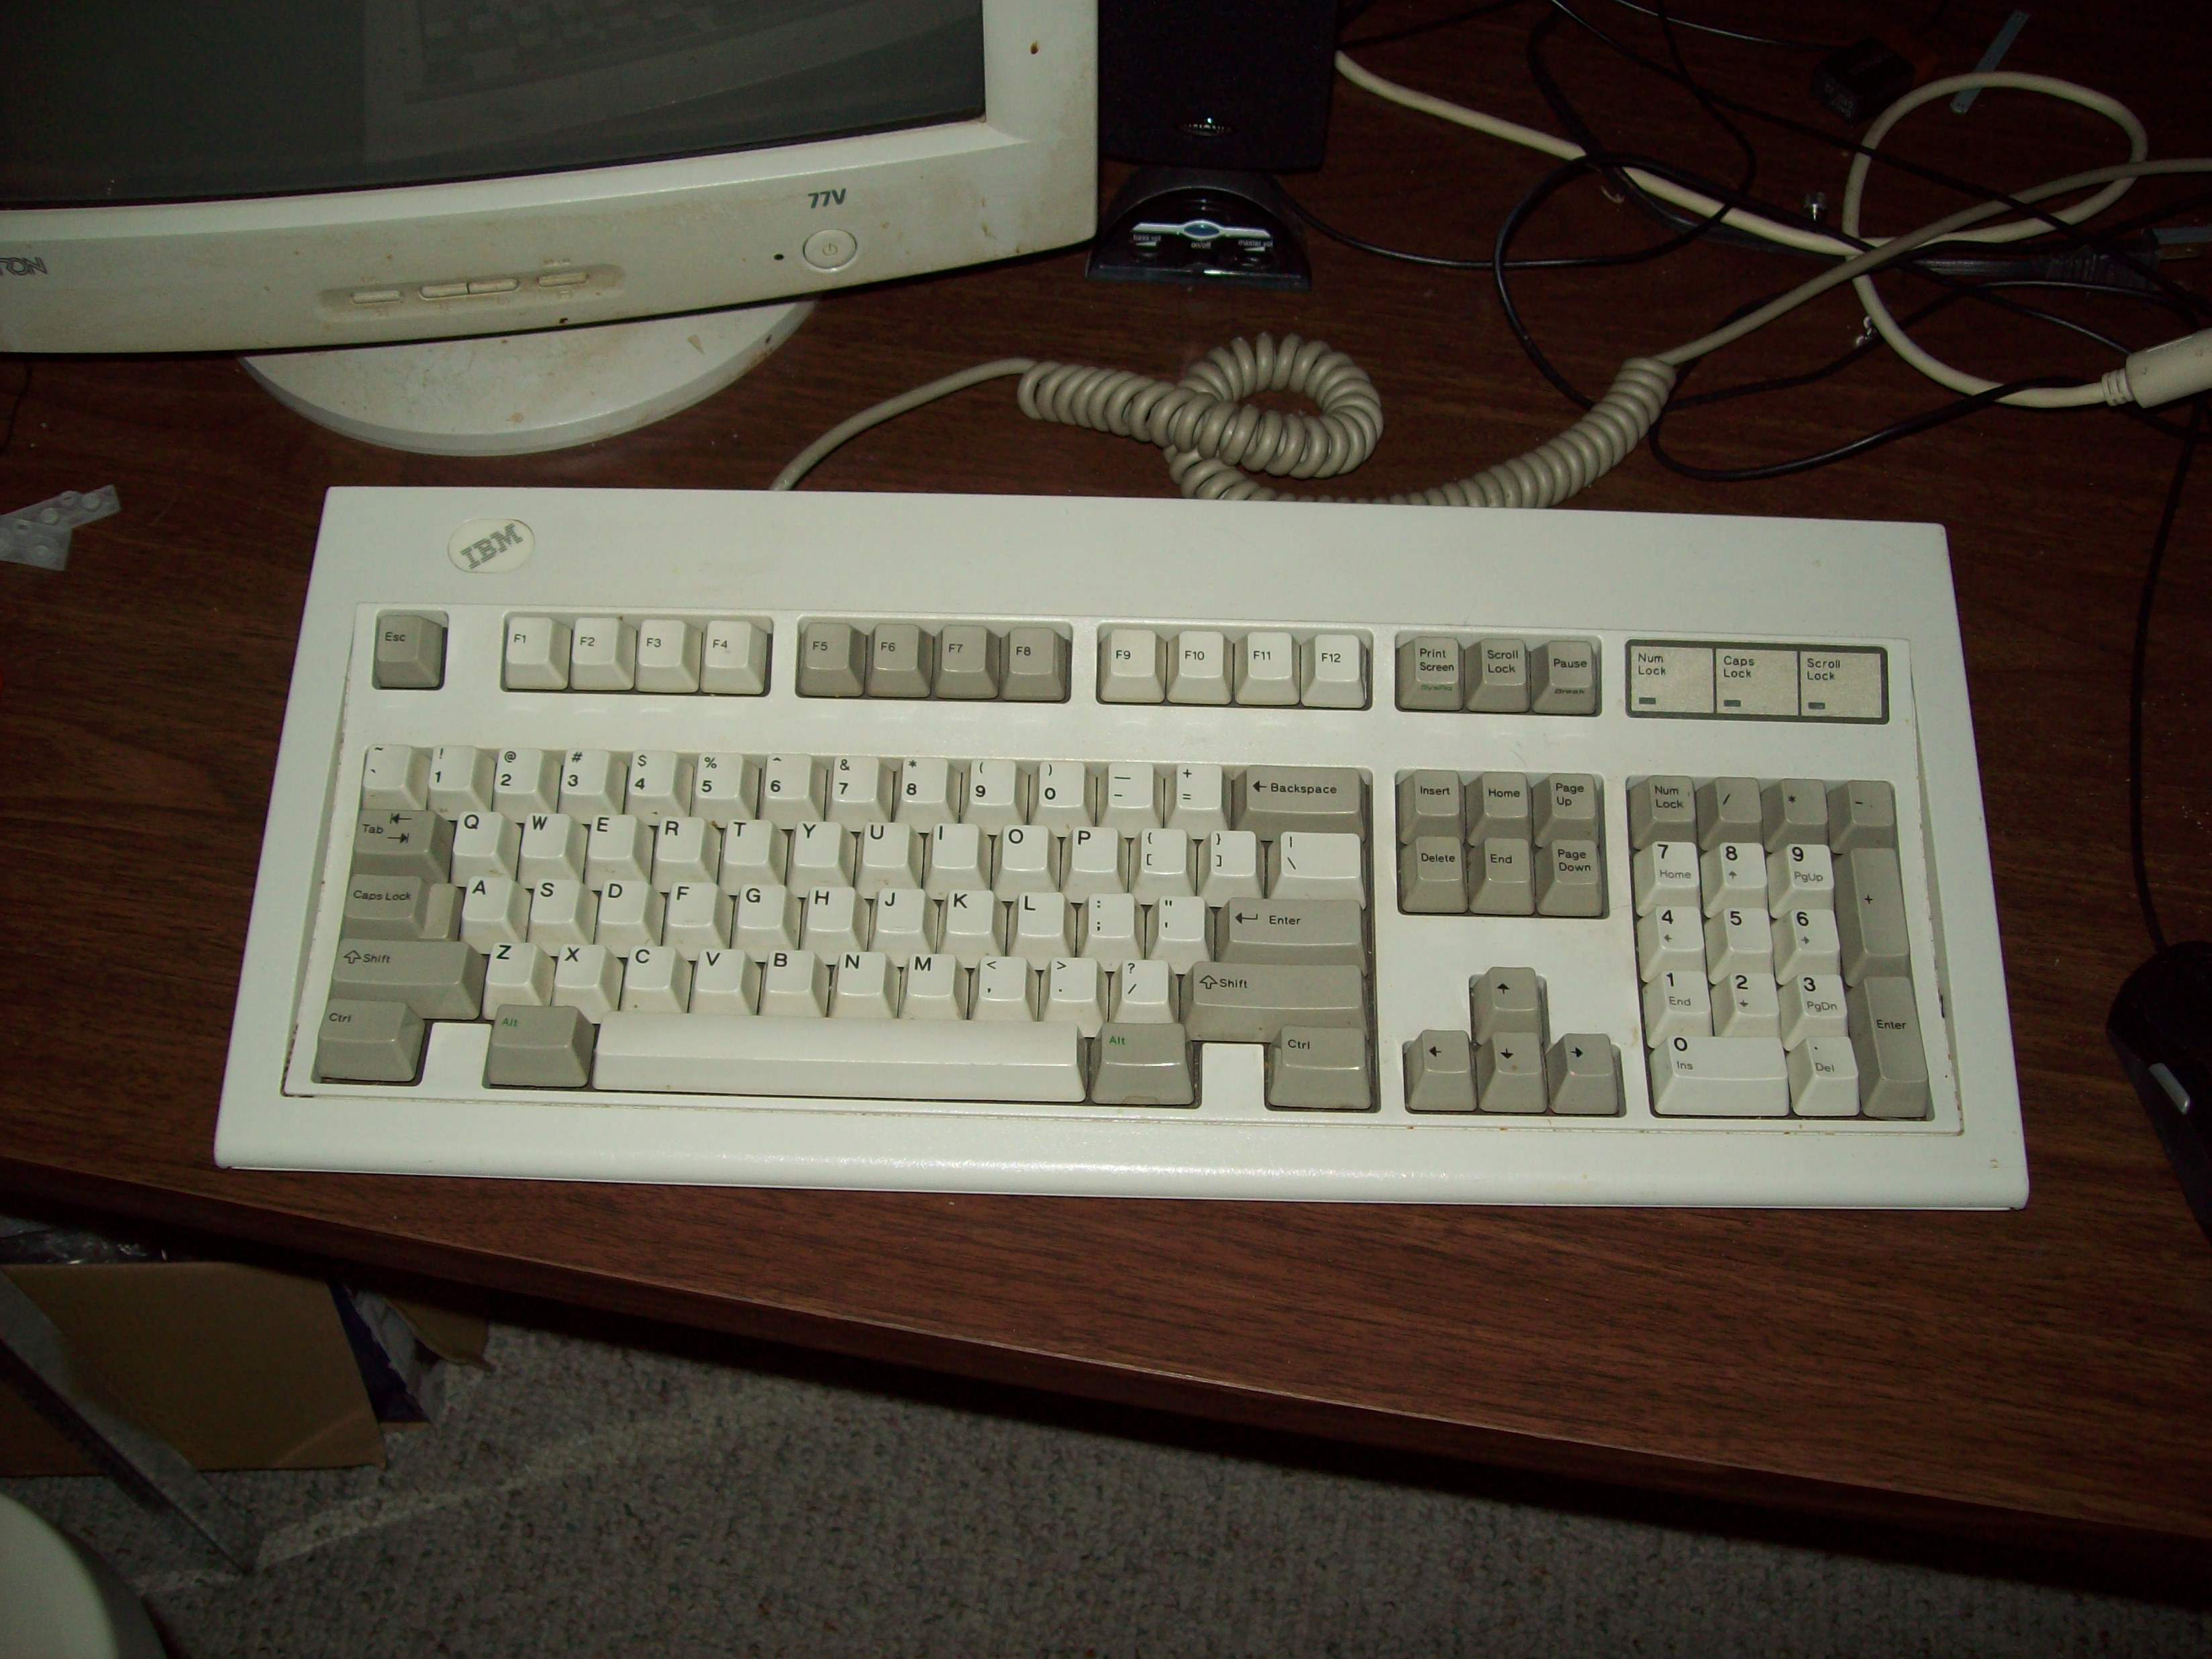 Backslash key placement on keyboards - Tech Support Forum